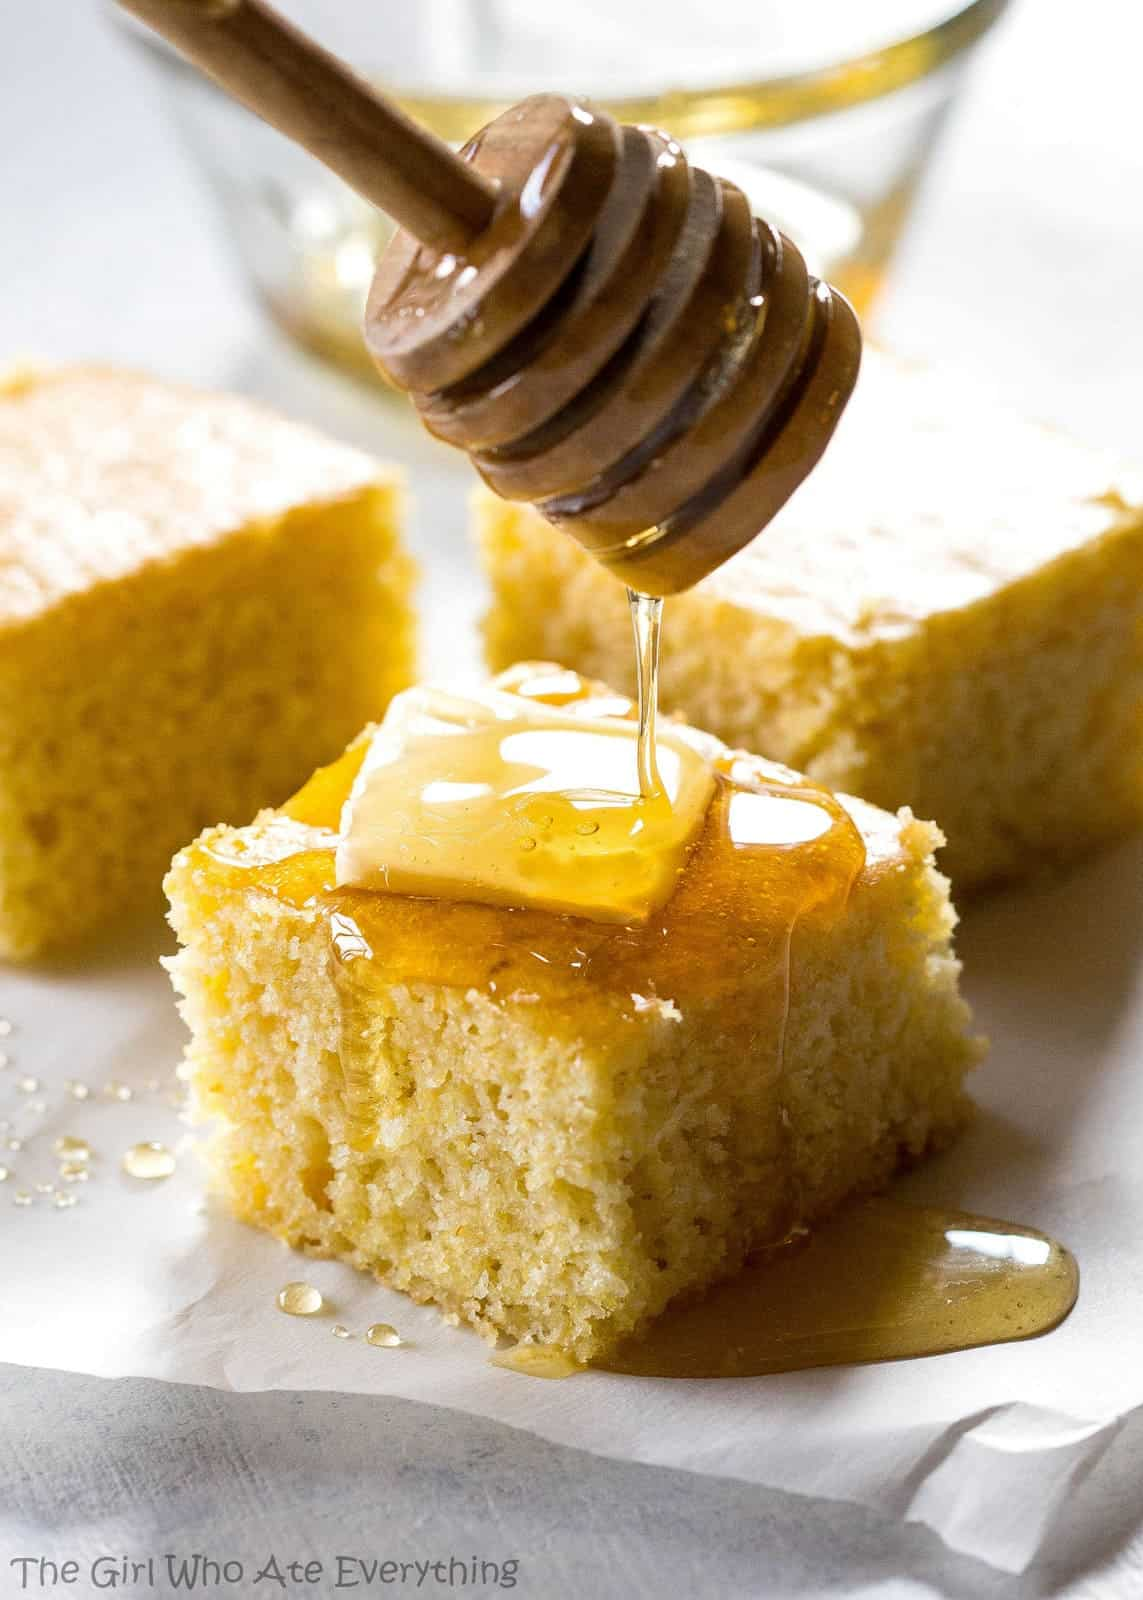 The Best Sweet Cornbread The Girl Who Ate Everything